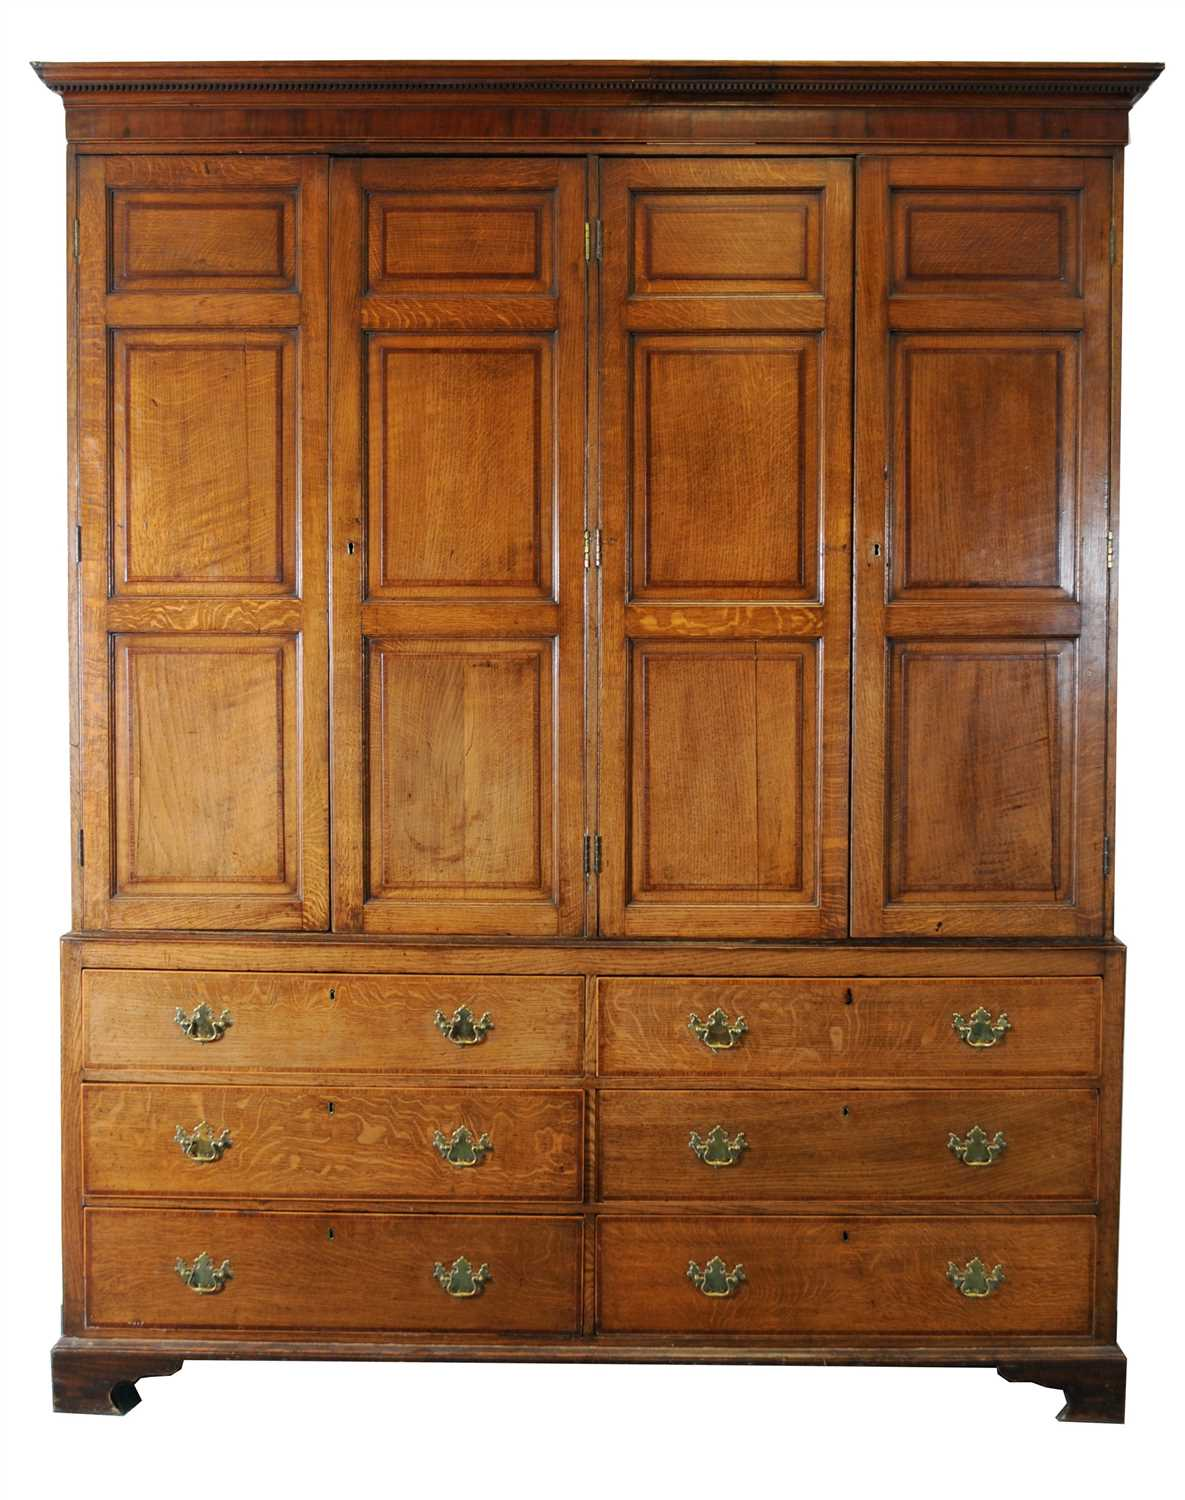 Lot 766-A large and impressive George III country house cross-banded oak livery cupboard